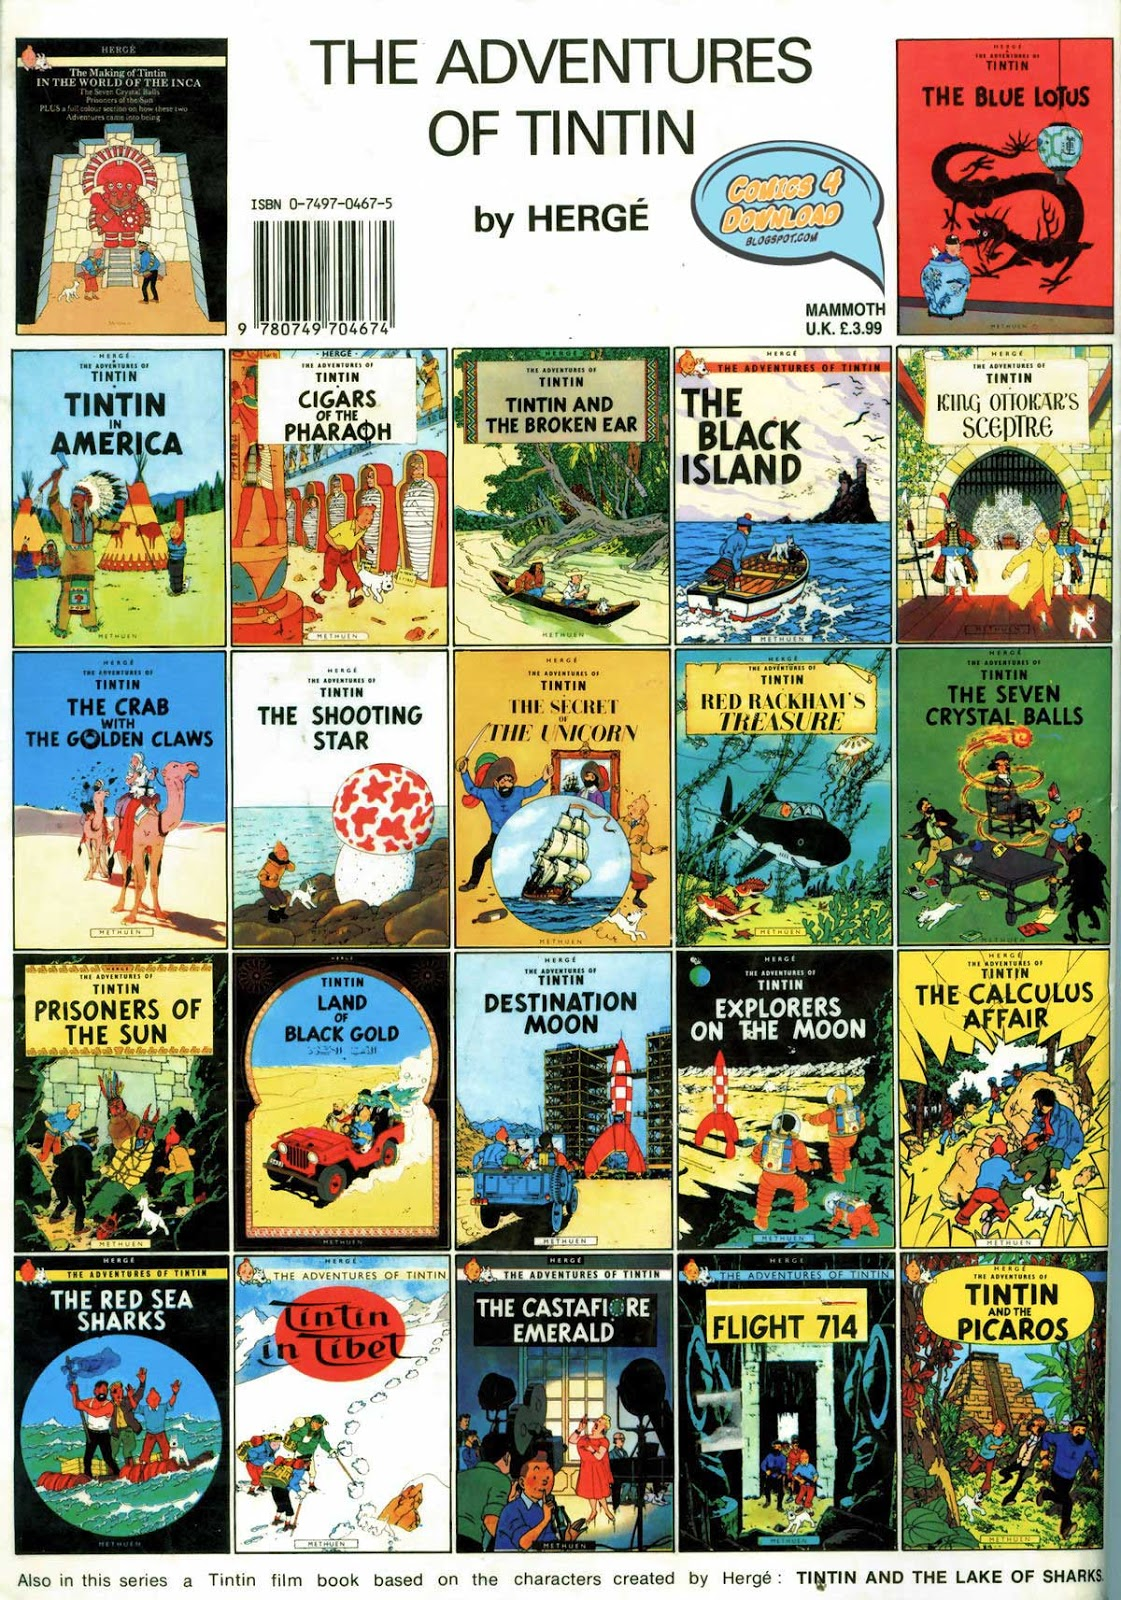 comics 4 download: the adventures of tintin comic books (complete)